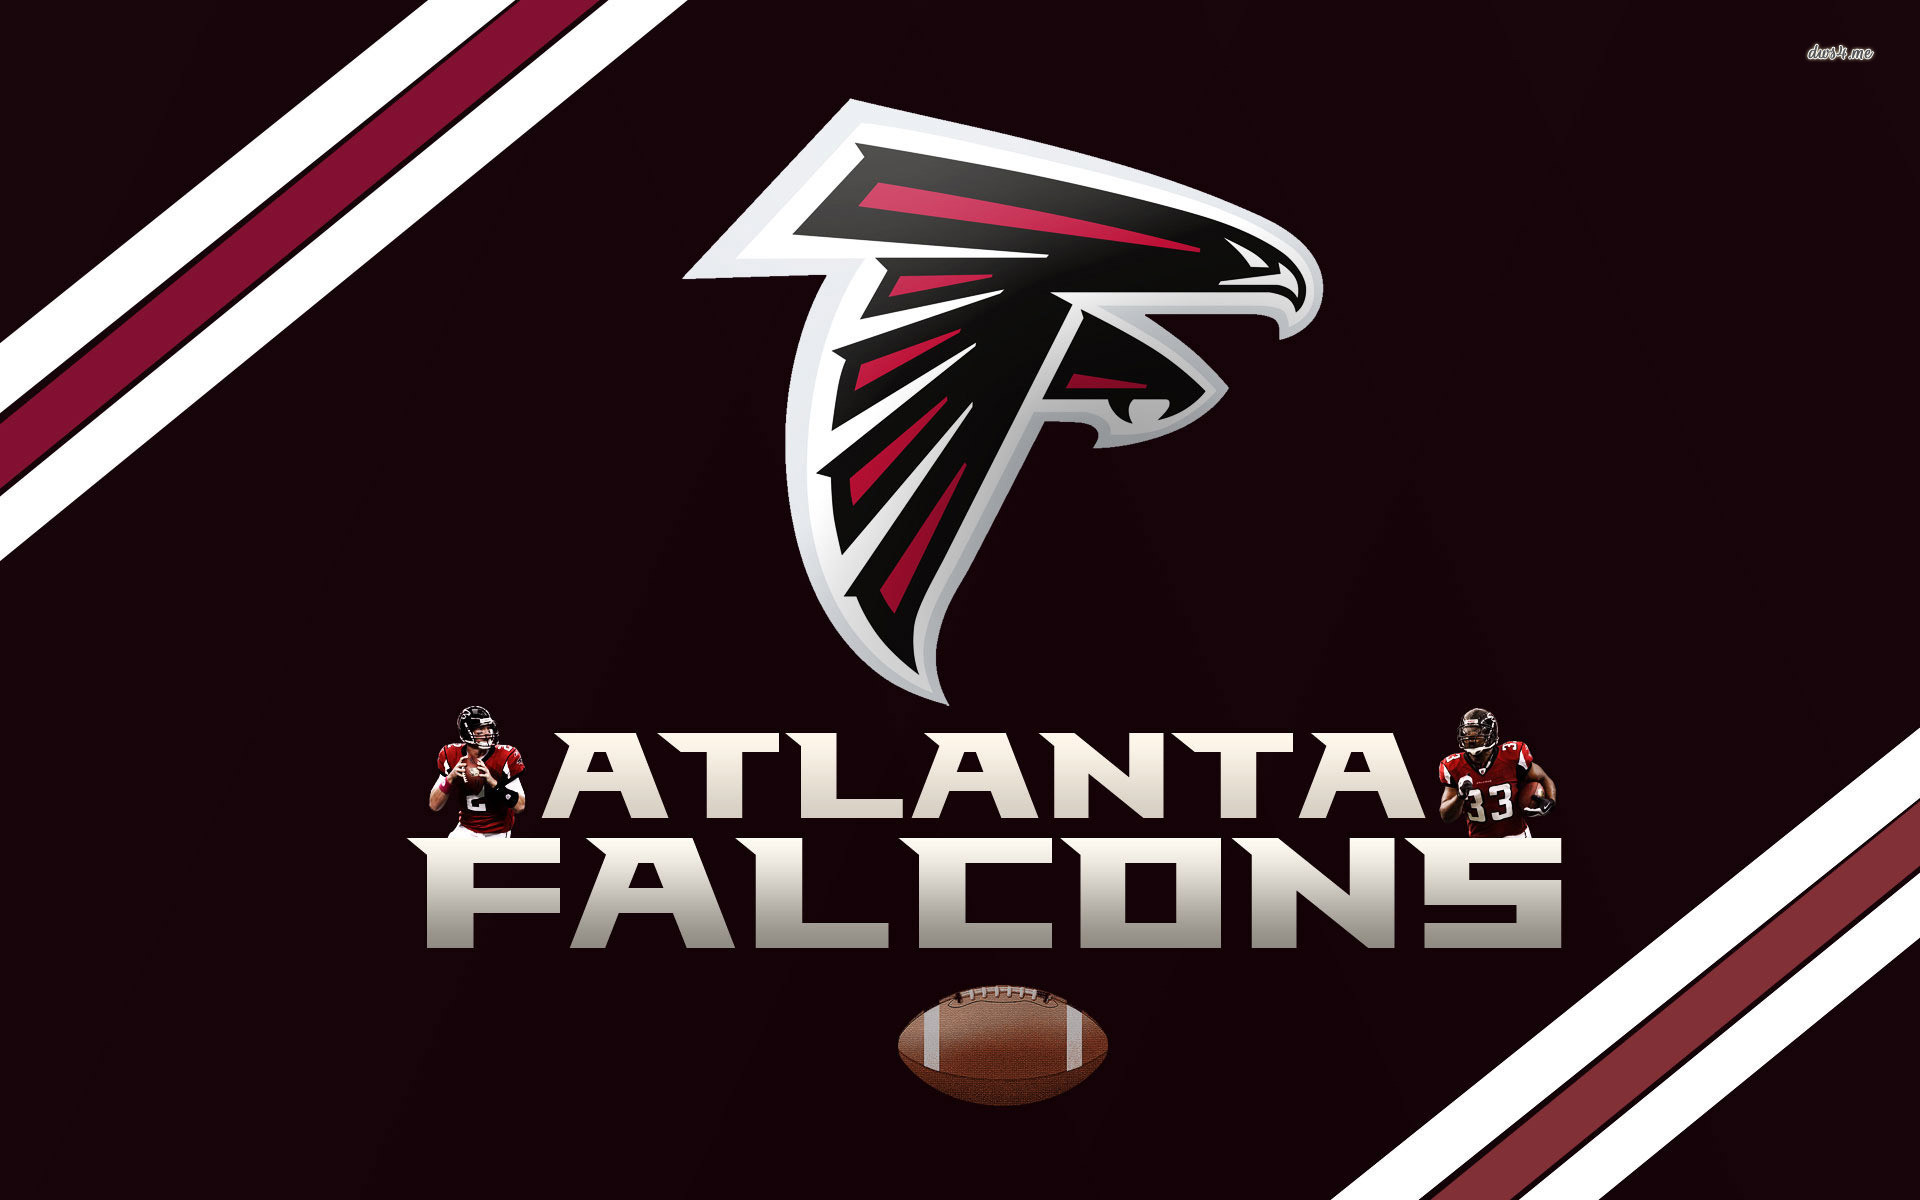 1920x1080 Atlanta Falcons Desktop Wallpapers Sean Weatherspoon By Crebagger